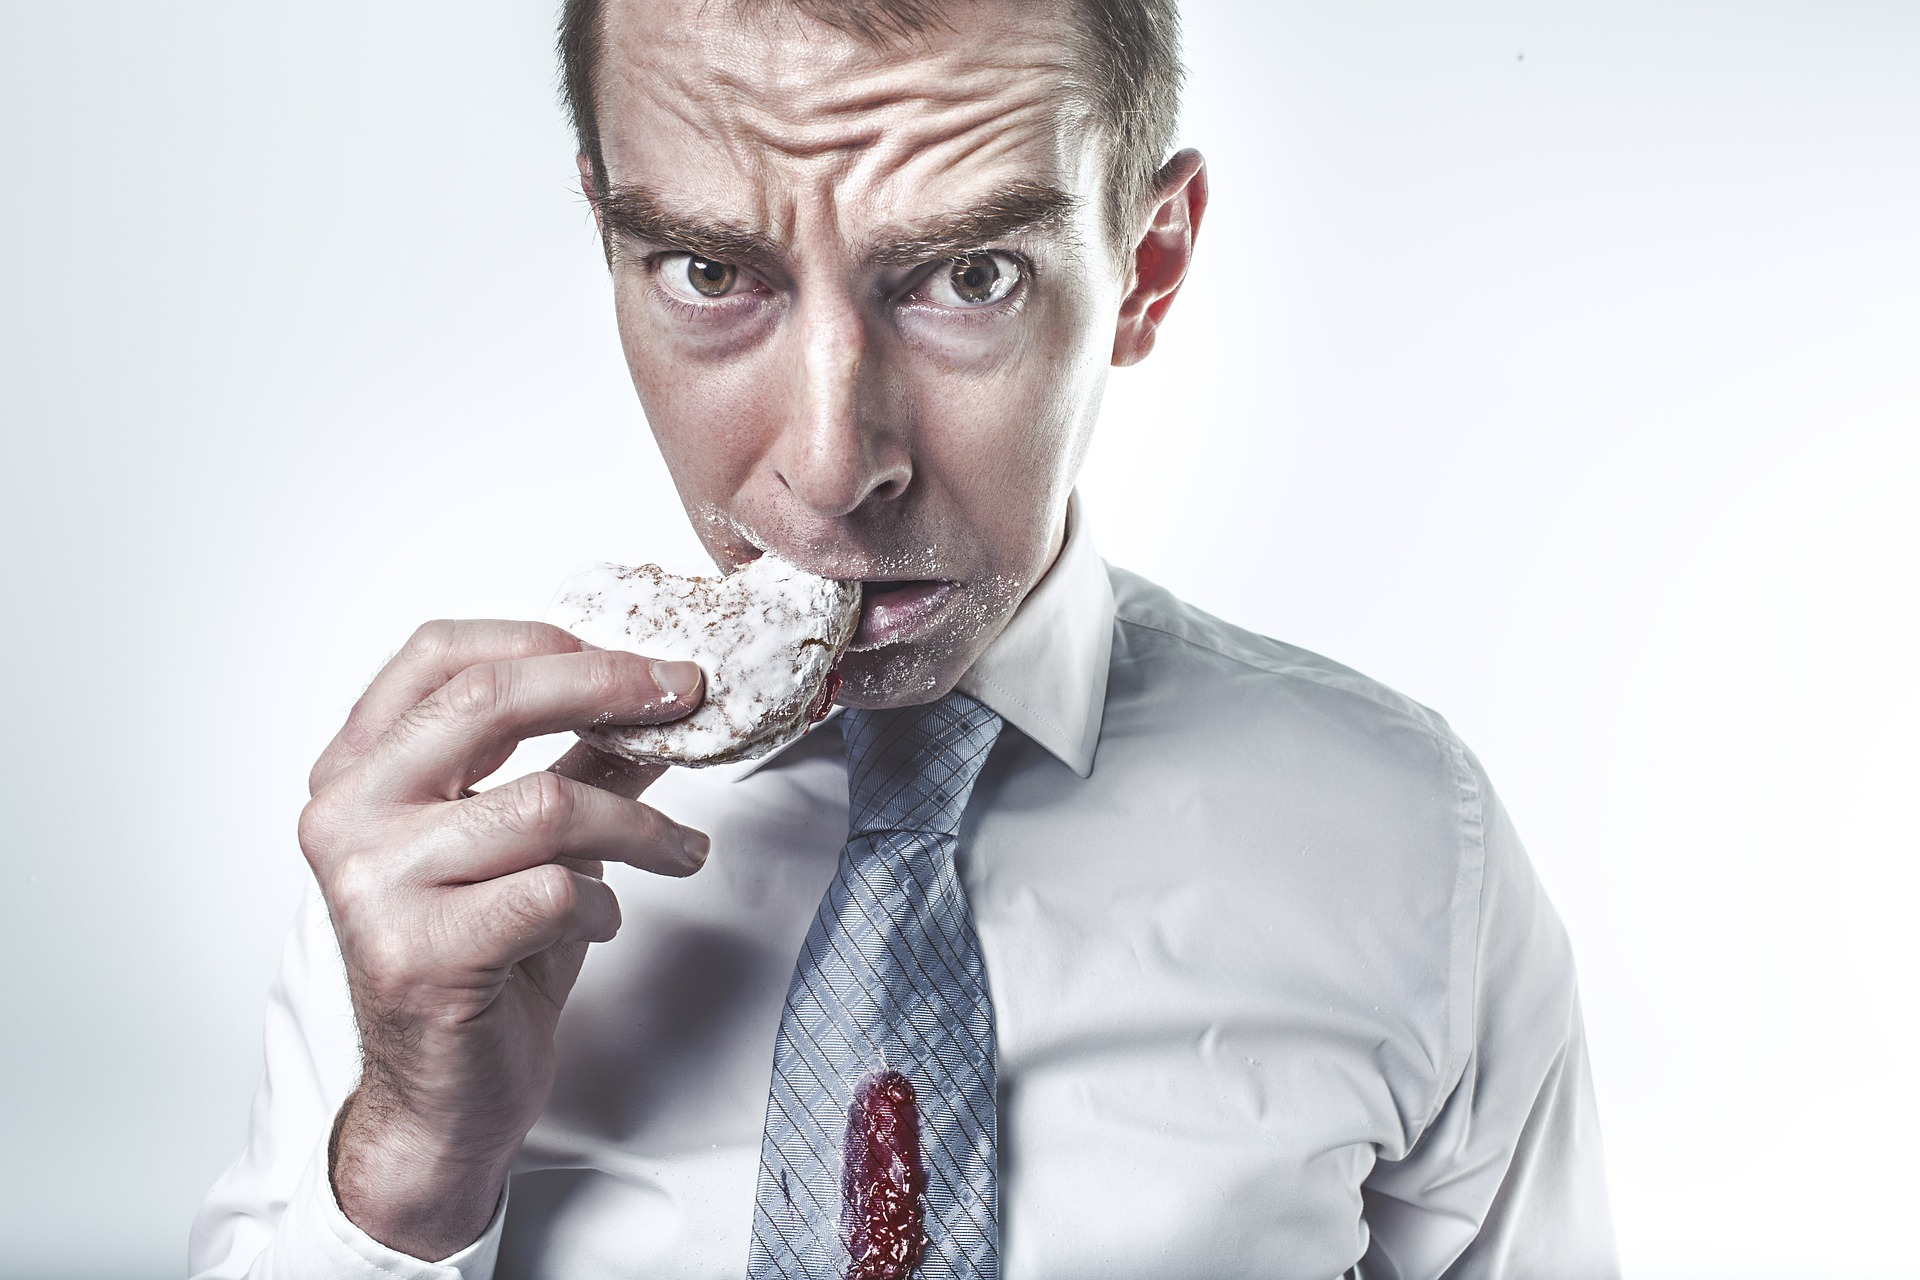 man eating a jelly donut